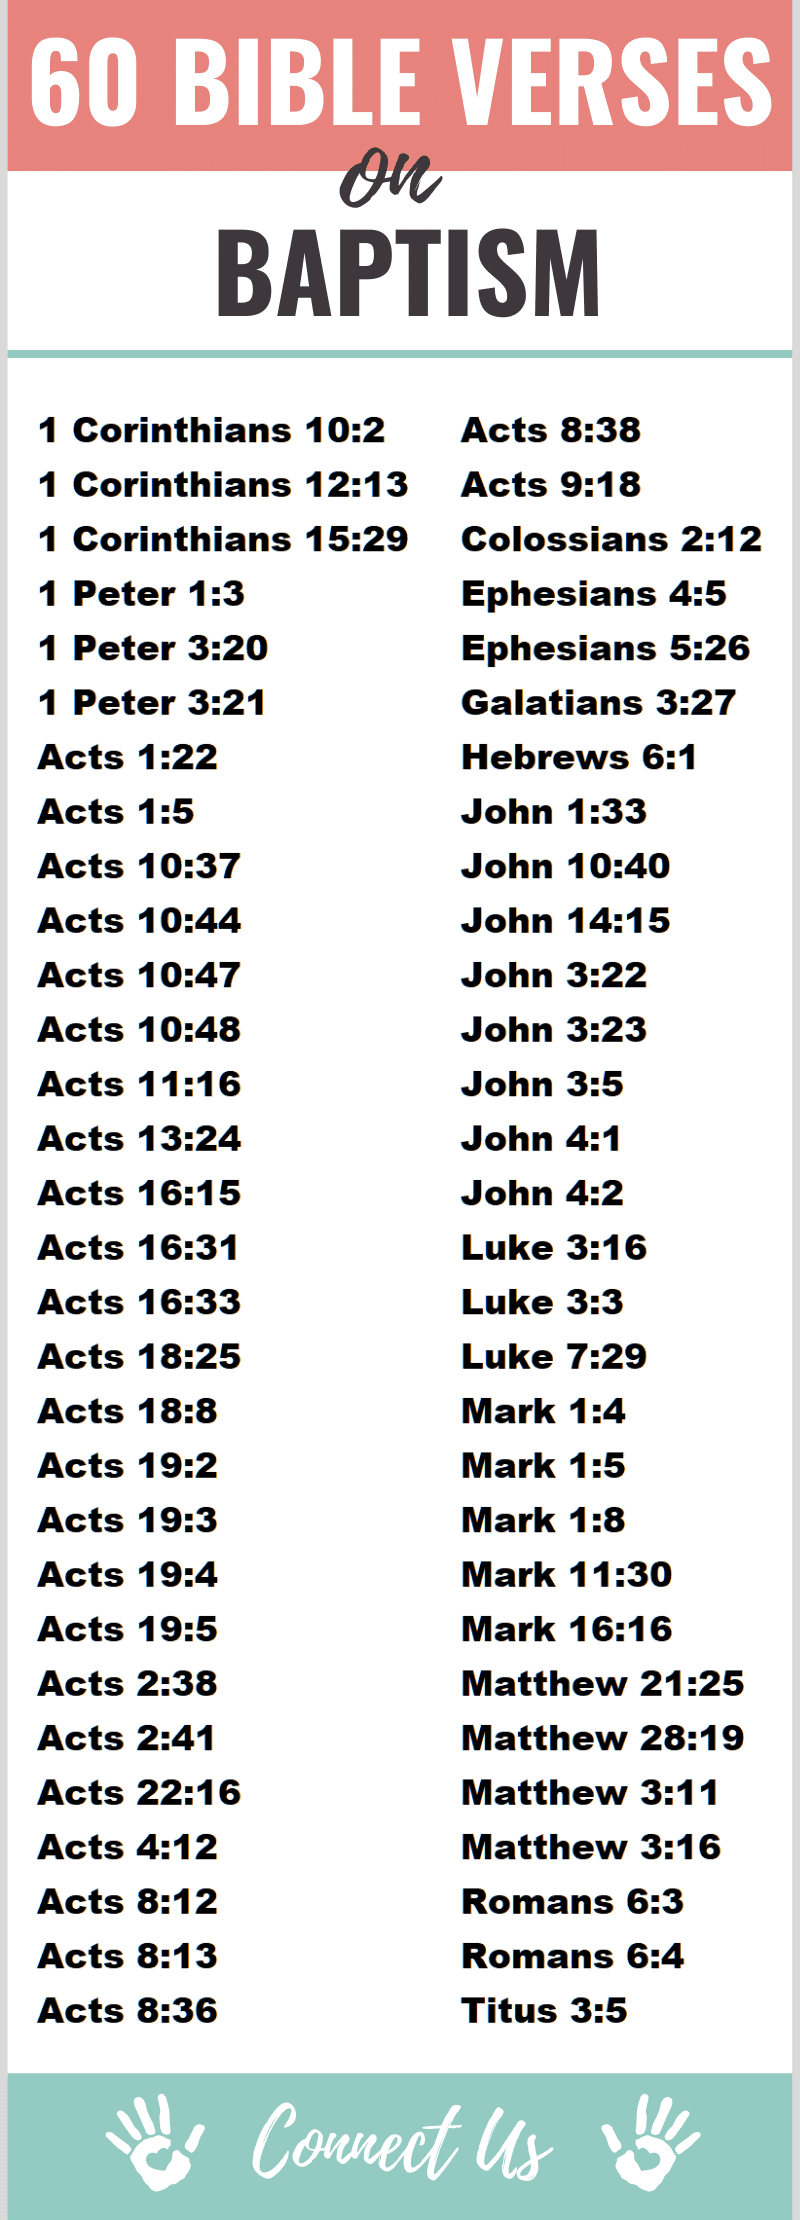 Bible Verses on Baptism